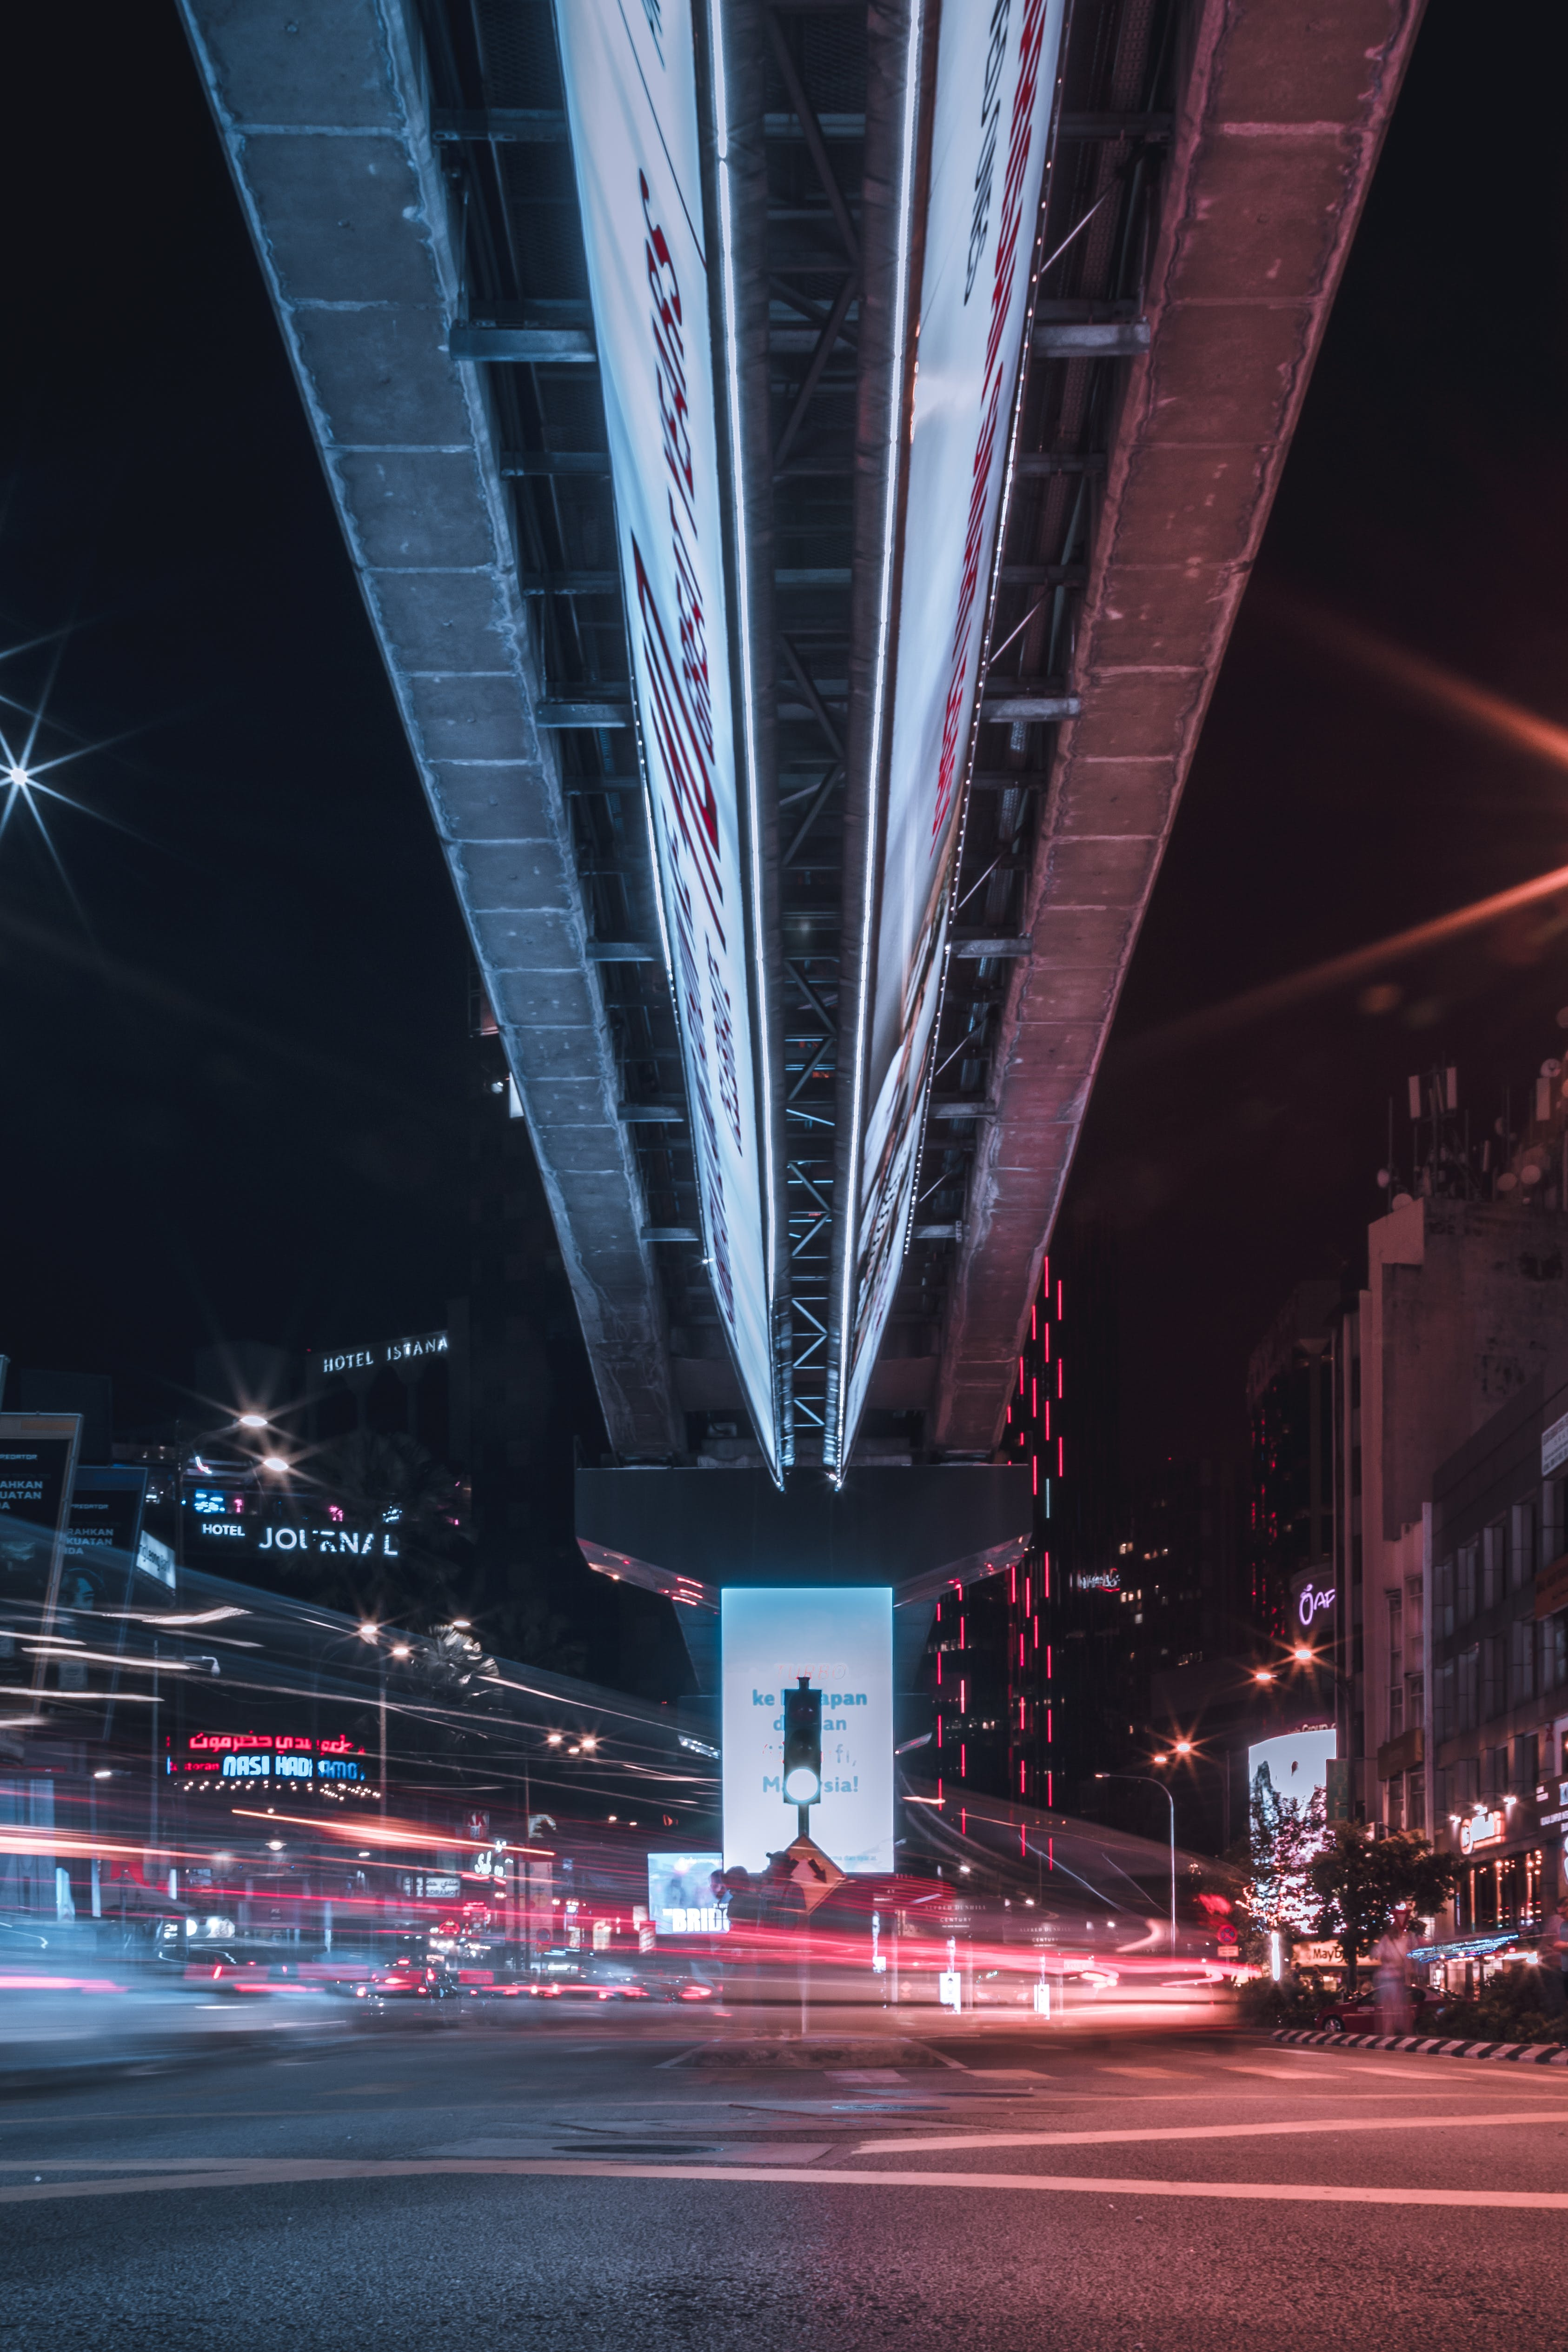 Timelapse Photo of Intersection Under a Bridge